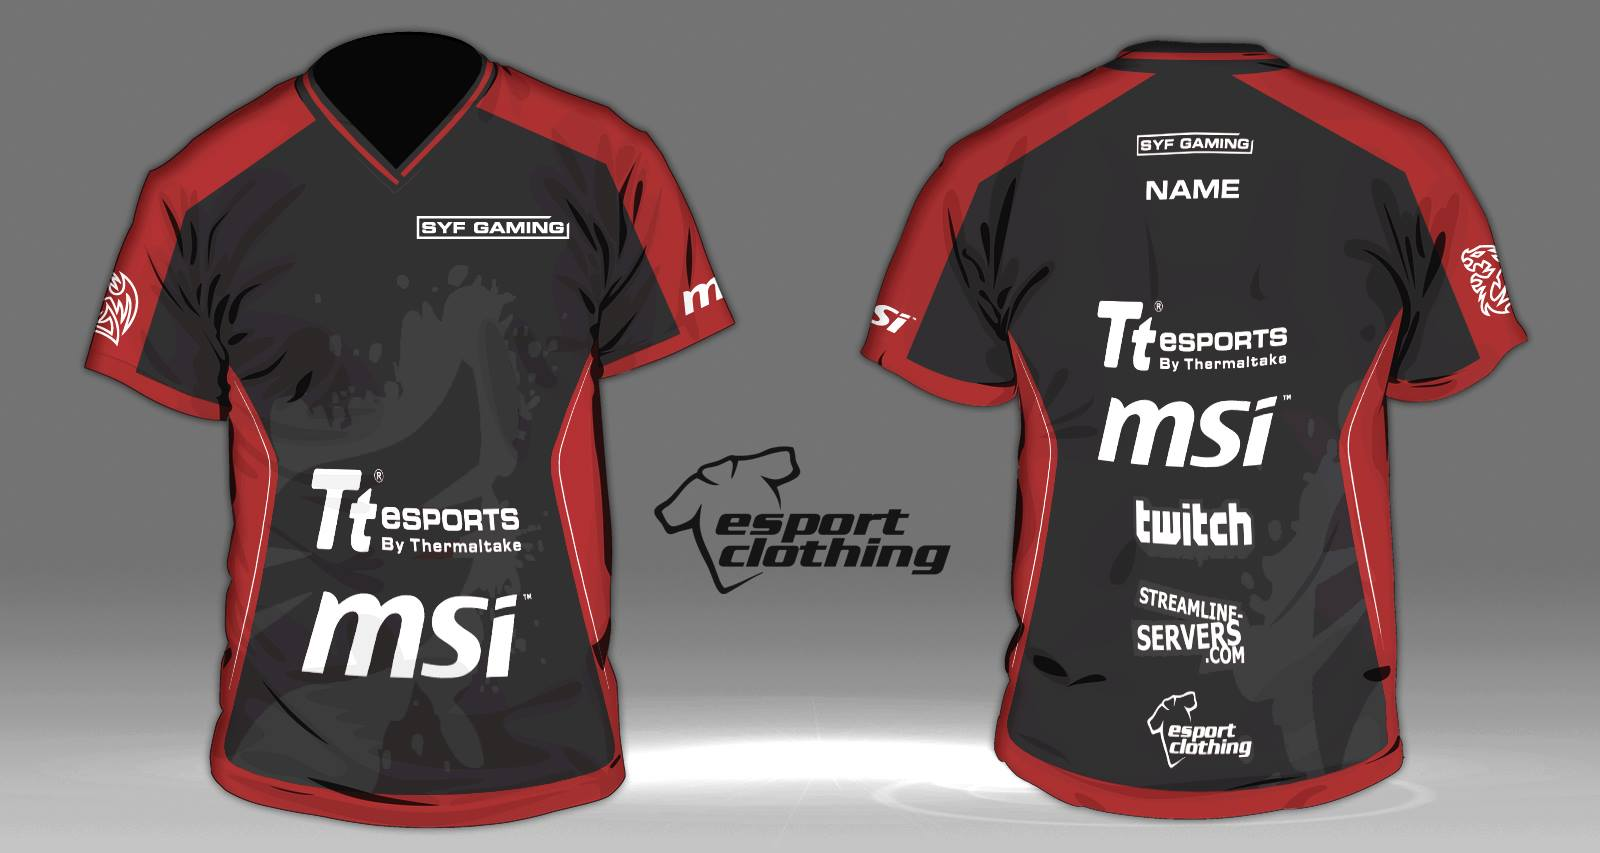 SYF Gaming - Athlete Short Sleeve Jersey